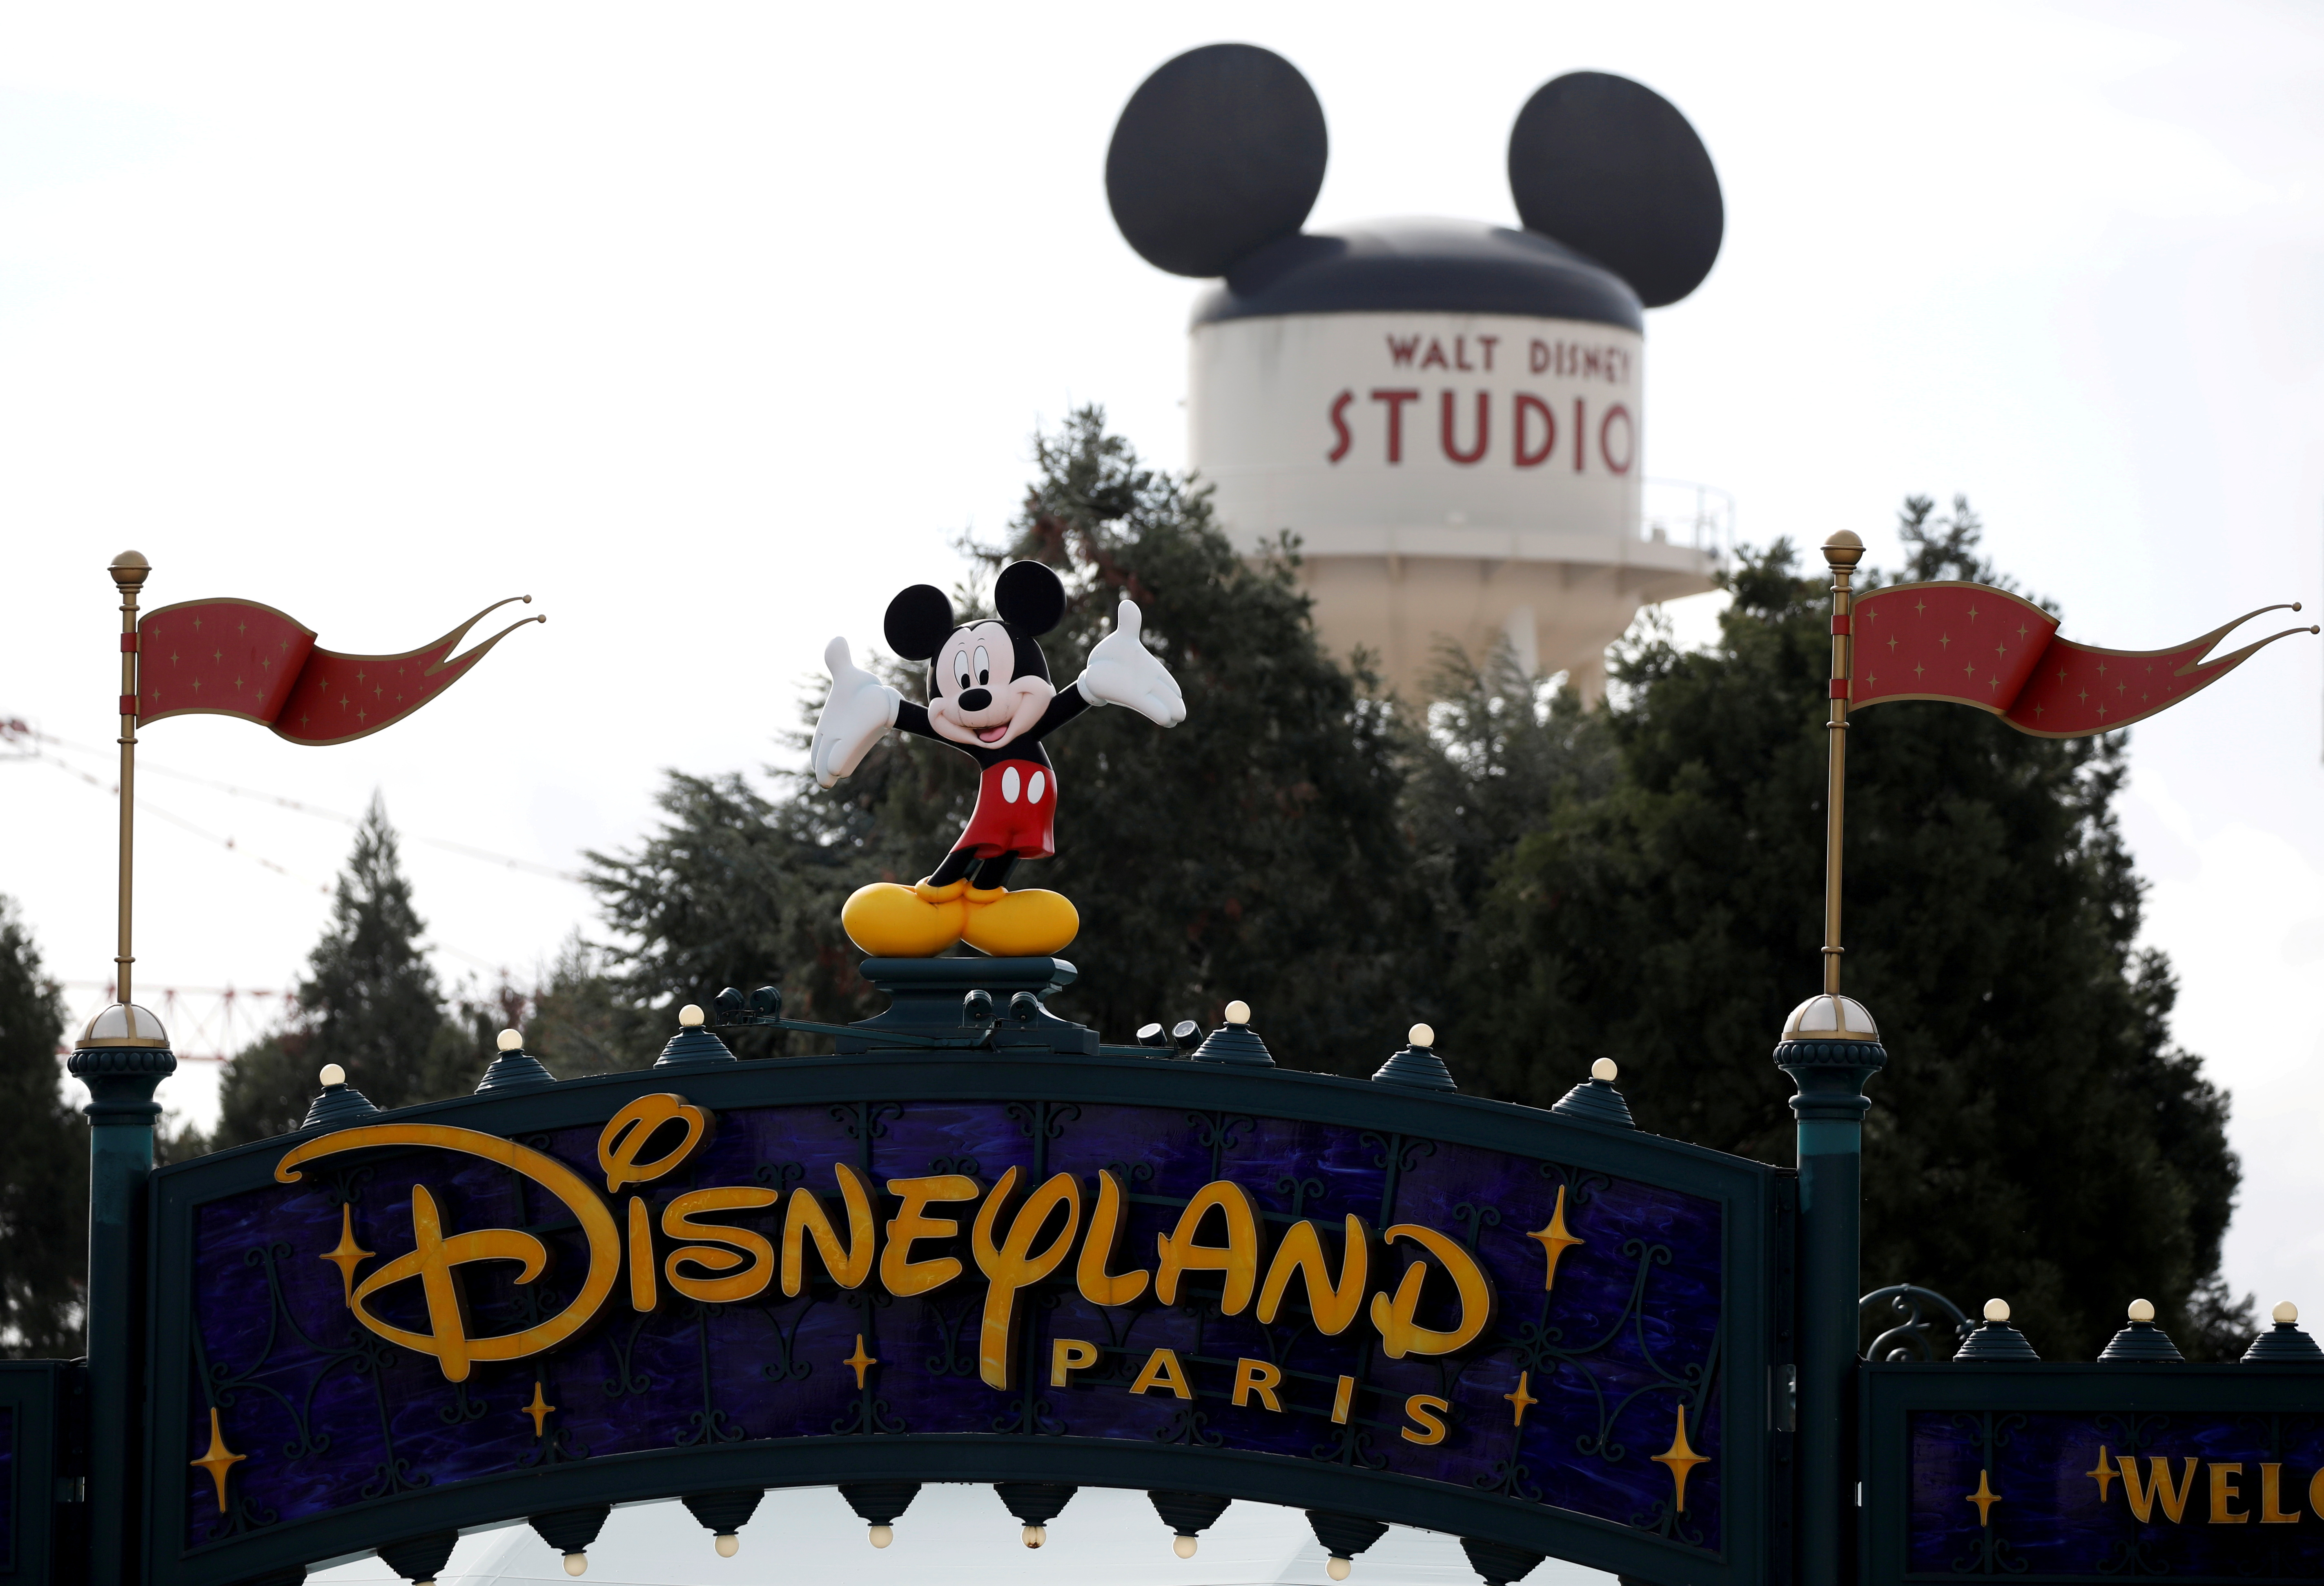 Disney character Mickey Mouse is seen above the entrance of Disneyland Paris, in Marne-la-Vallee, near Paris, France, March 9, 2020.  REUTERS/Benoit Tessier/File Photo